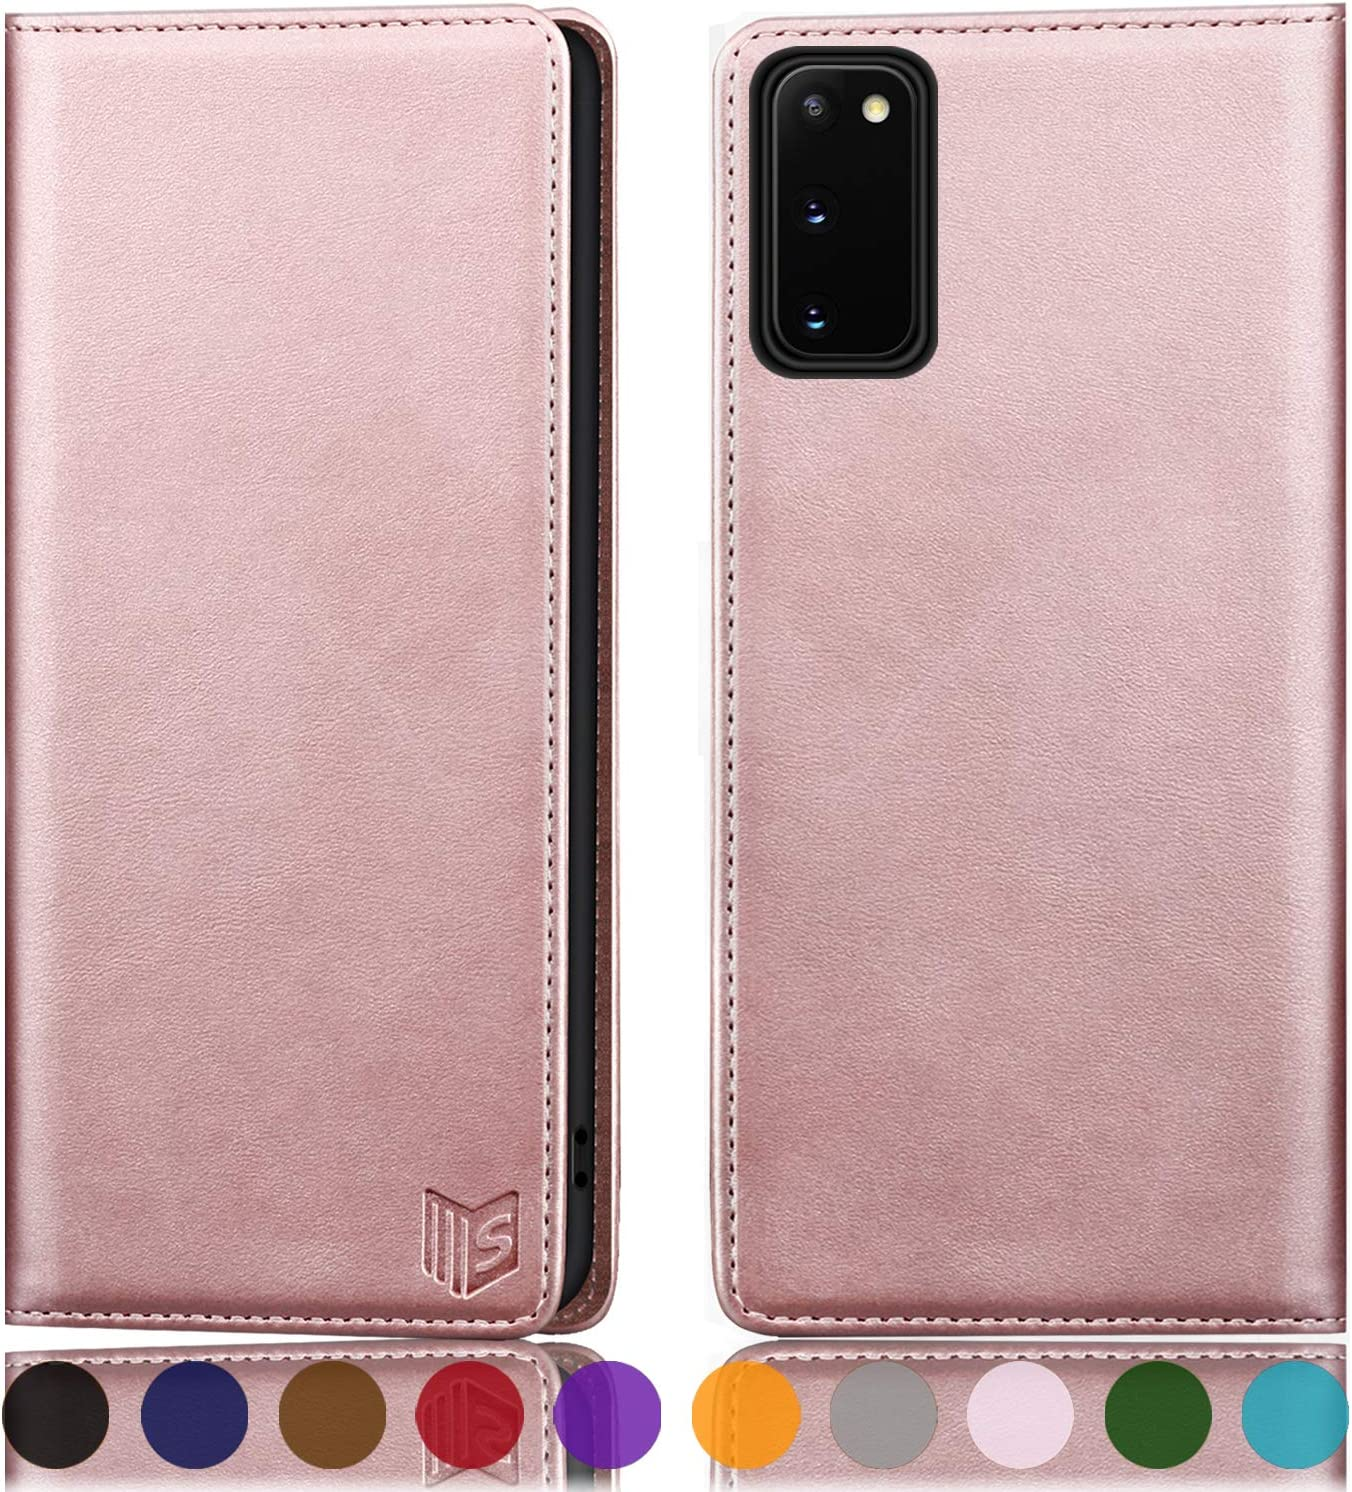 SUANPOT for Samsung Galaxy S20 FE Leather Wallet case with RFID Blocking Credit Card Holder, Flip Folio Book Magnetic PU 5G Cell Phone Cover for S20FE Leather case Wallet for Men Women 6.5 Rose Gold